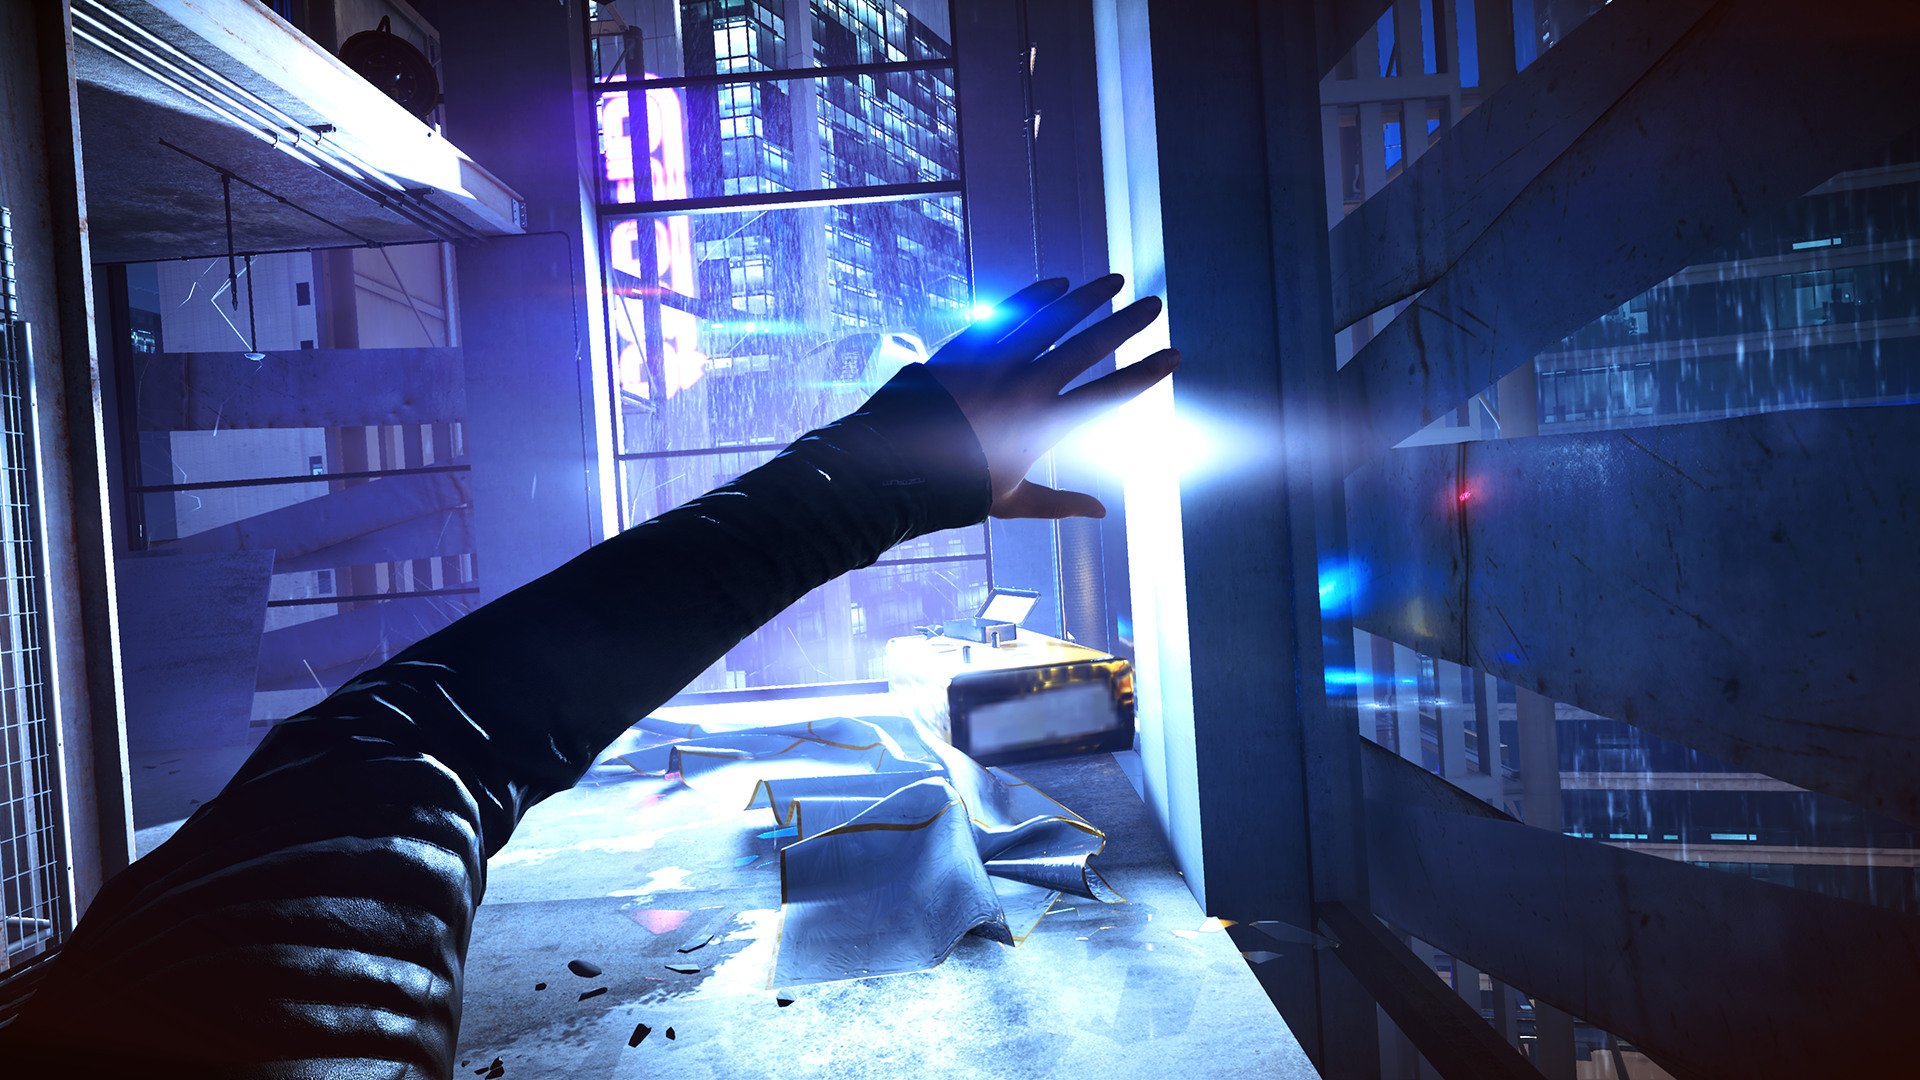 gameplay-from-mirror's-edge-ca-image-109